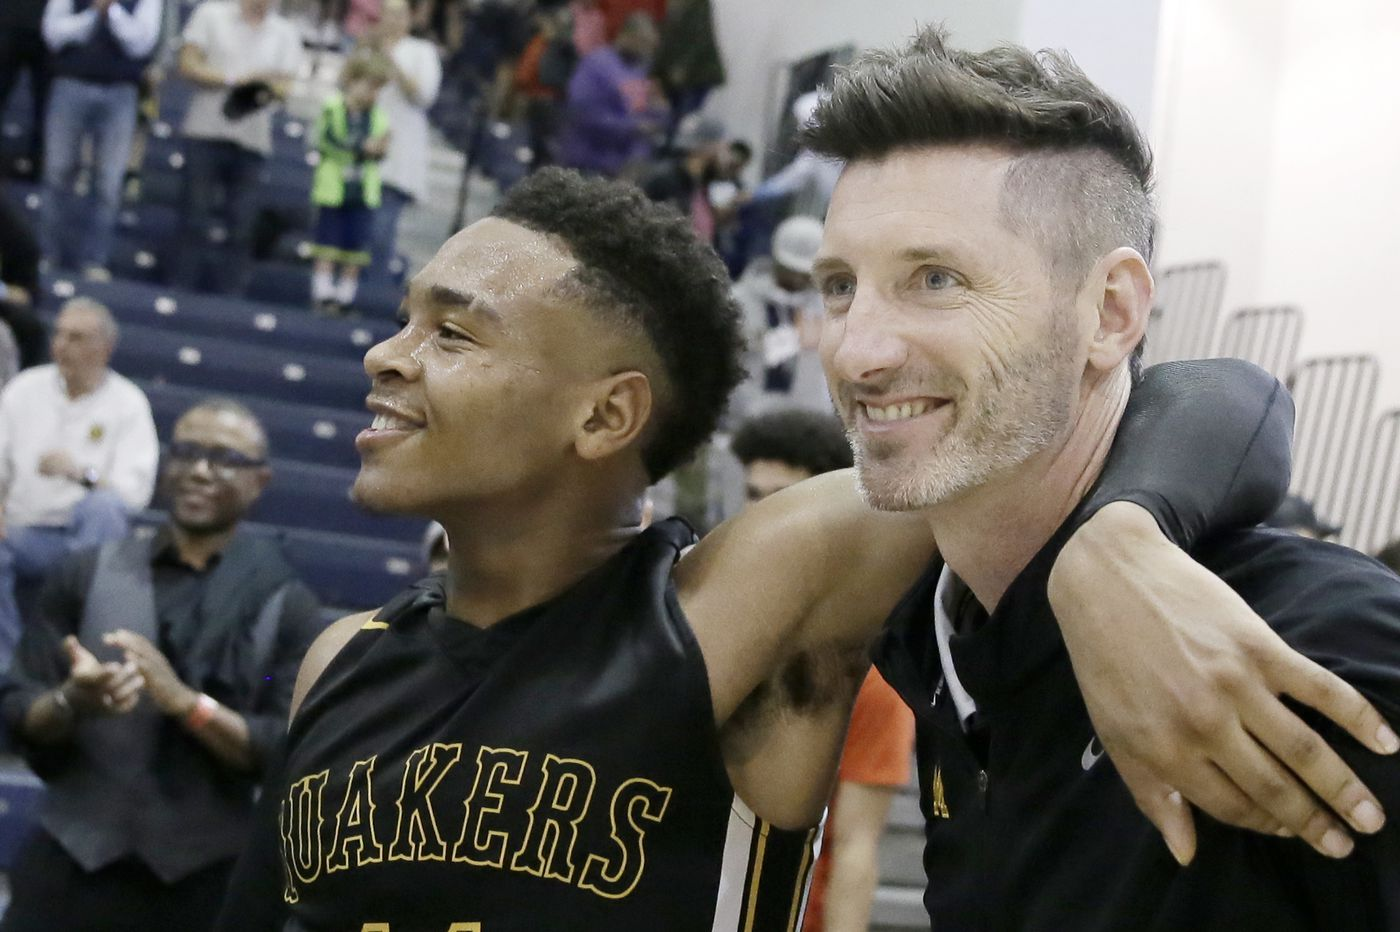 Moorestown's Shawn Anstey is the South Jersey boys' basketball coach of the year